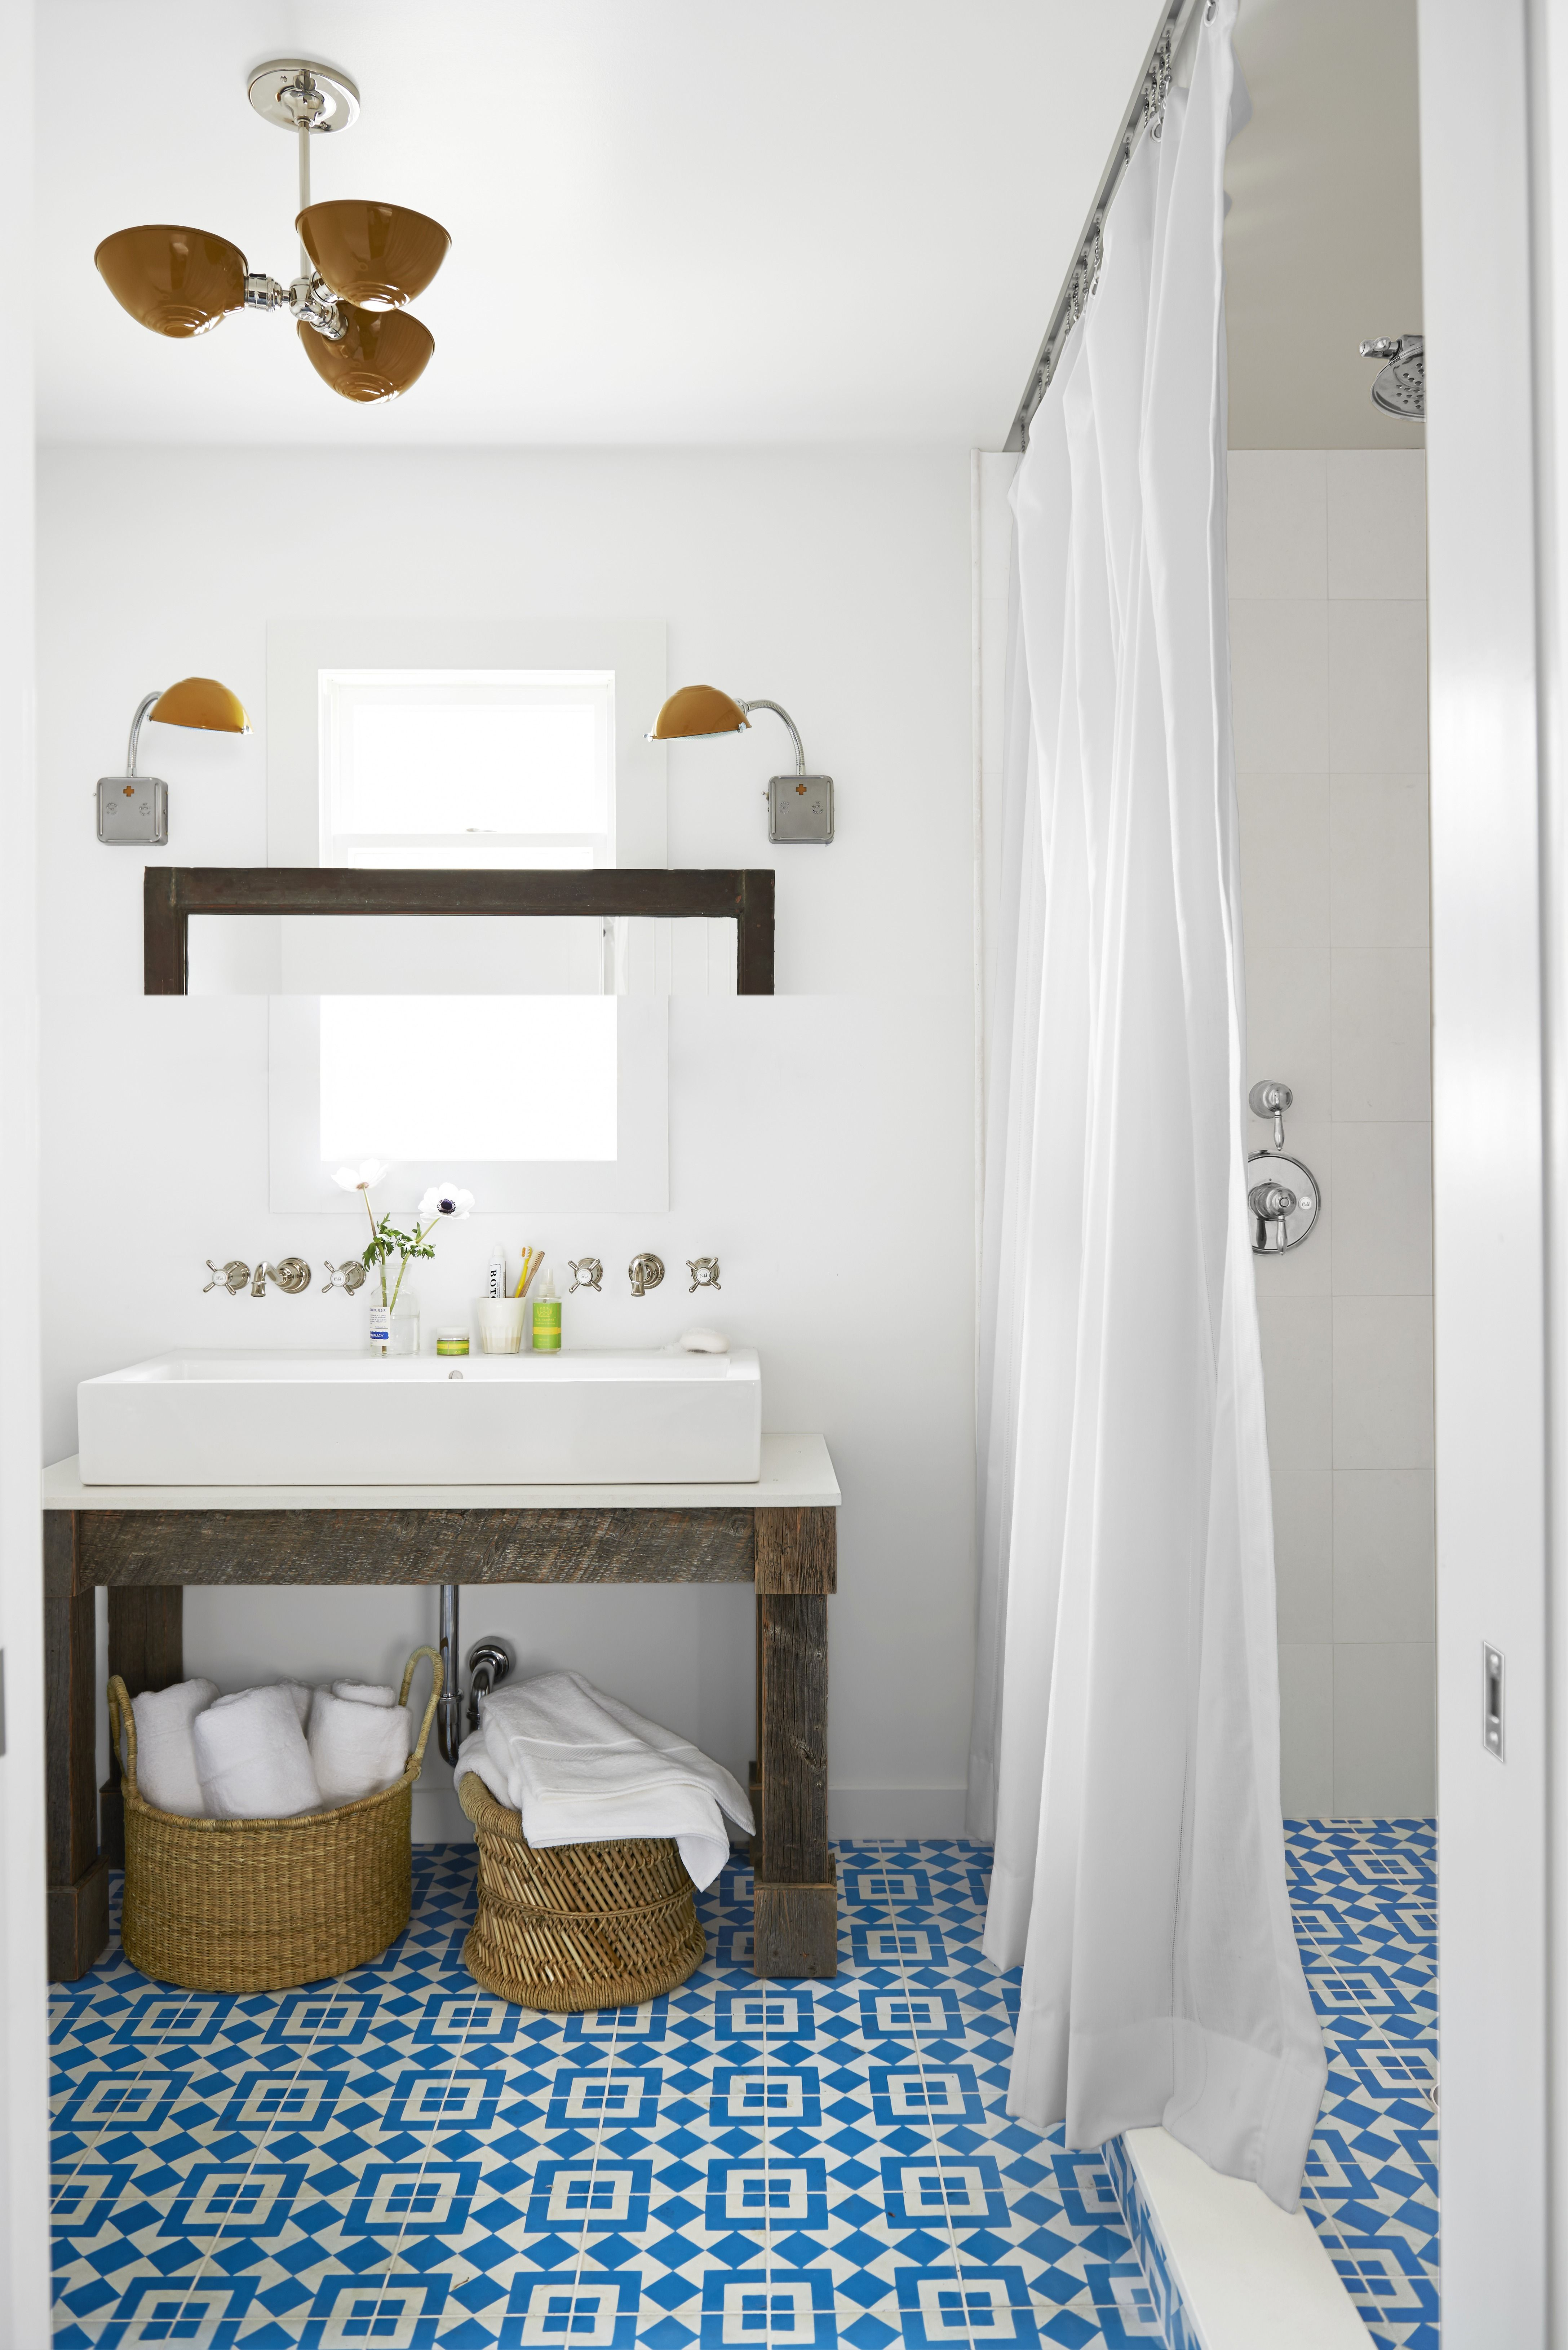 50 Bathroom Decorating Ideas - Pictures of Bathroom Decor ...